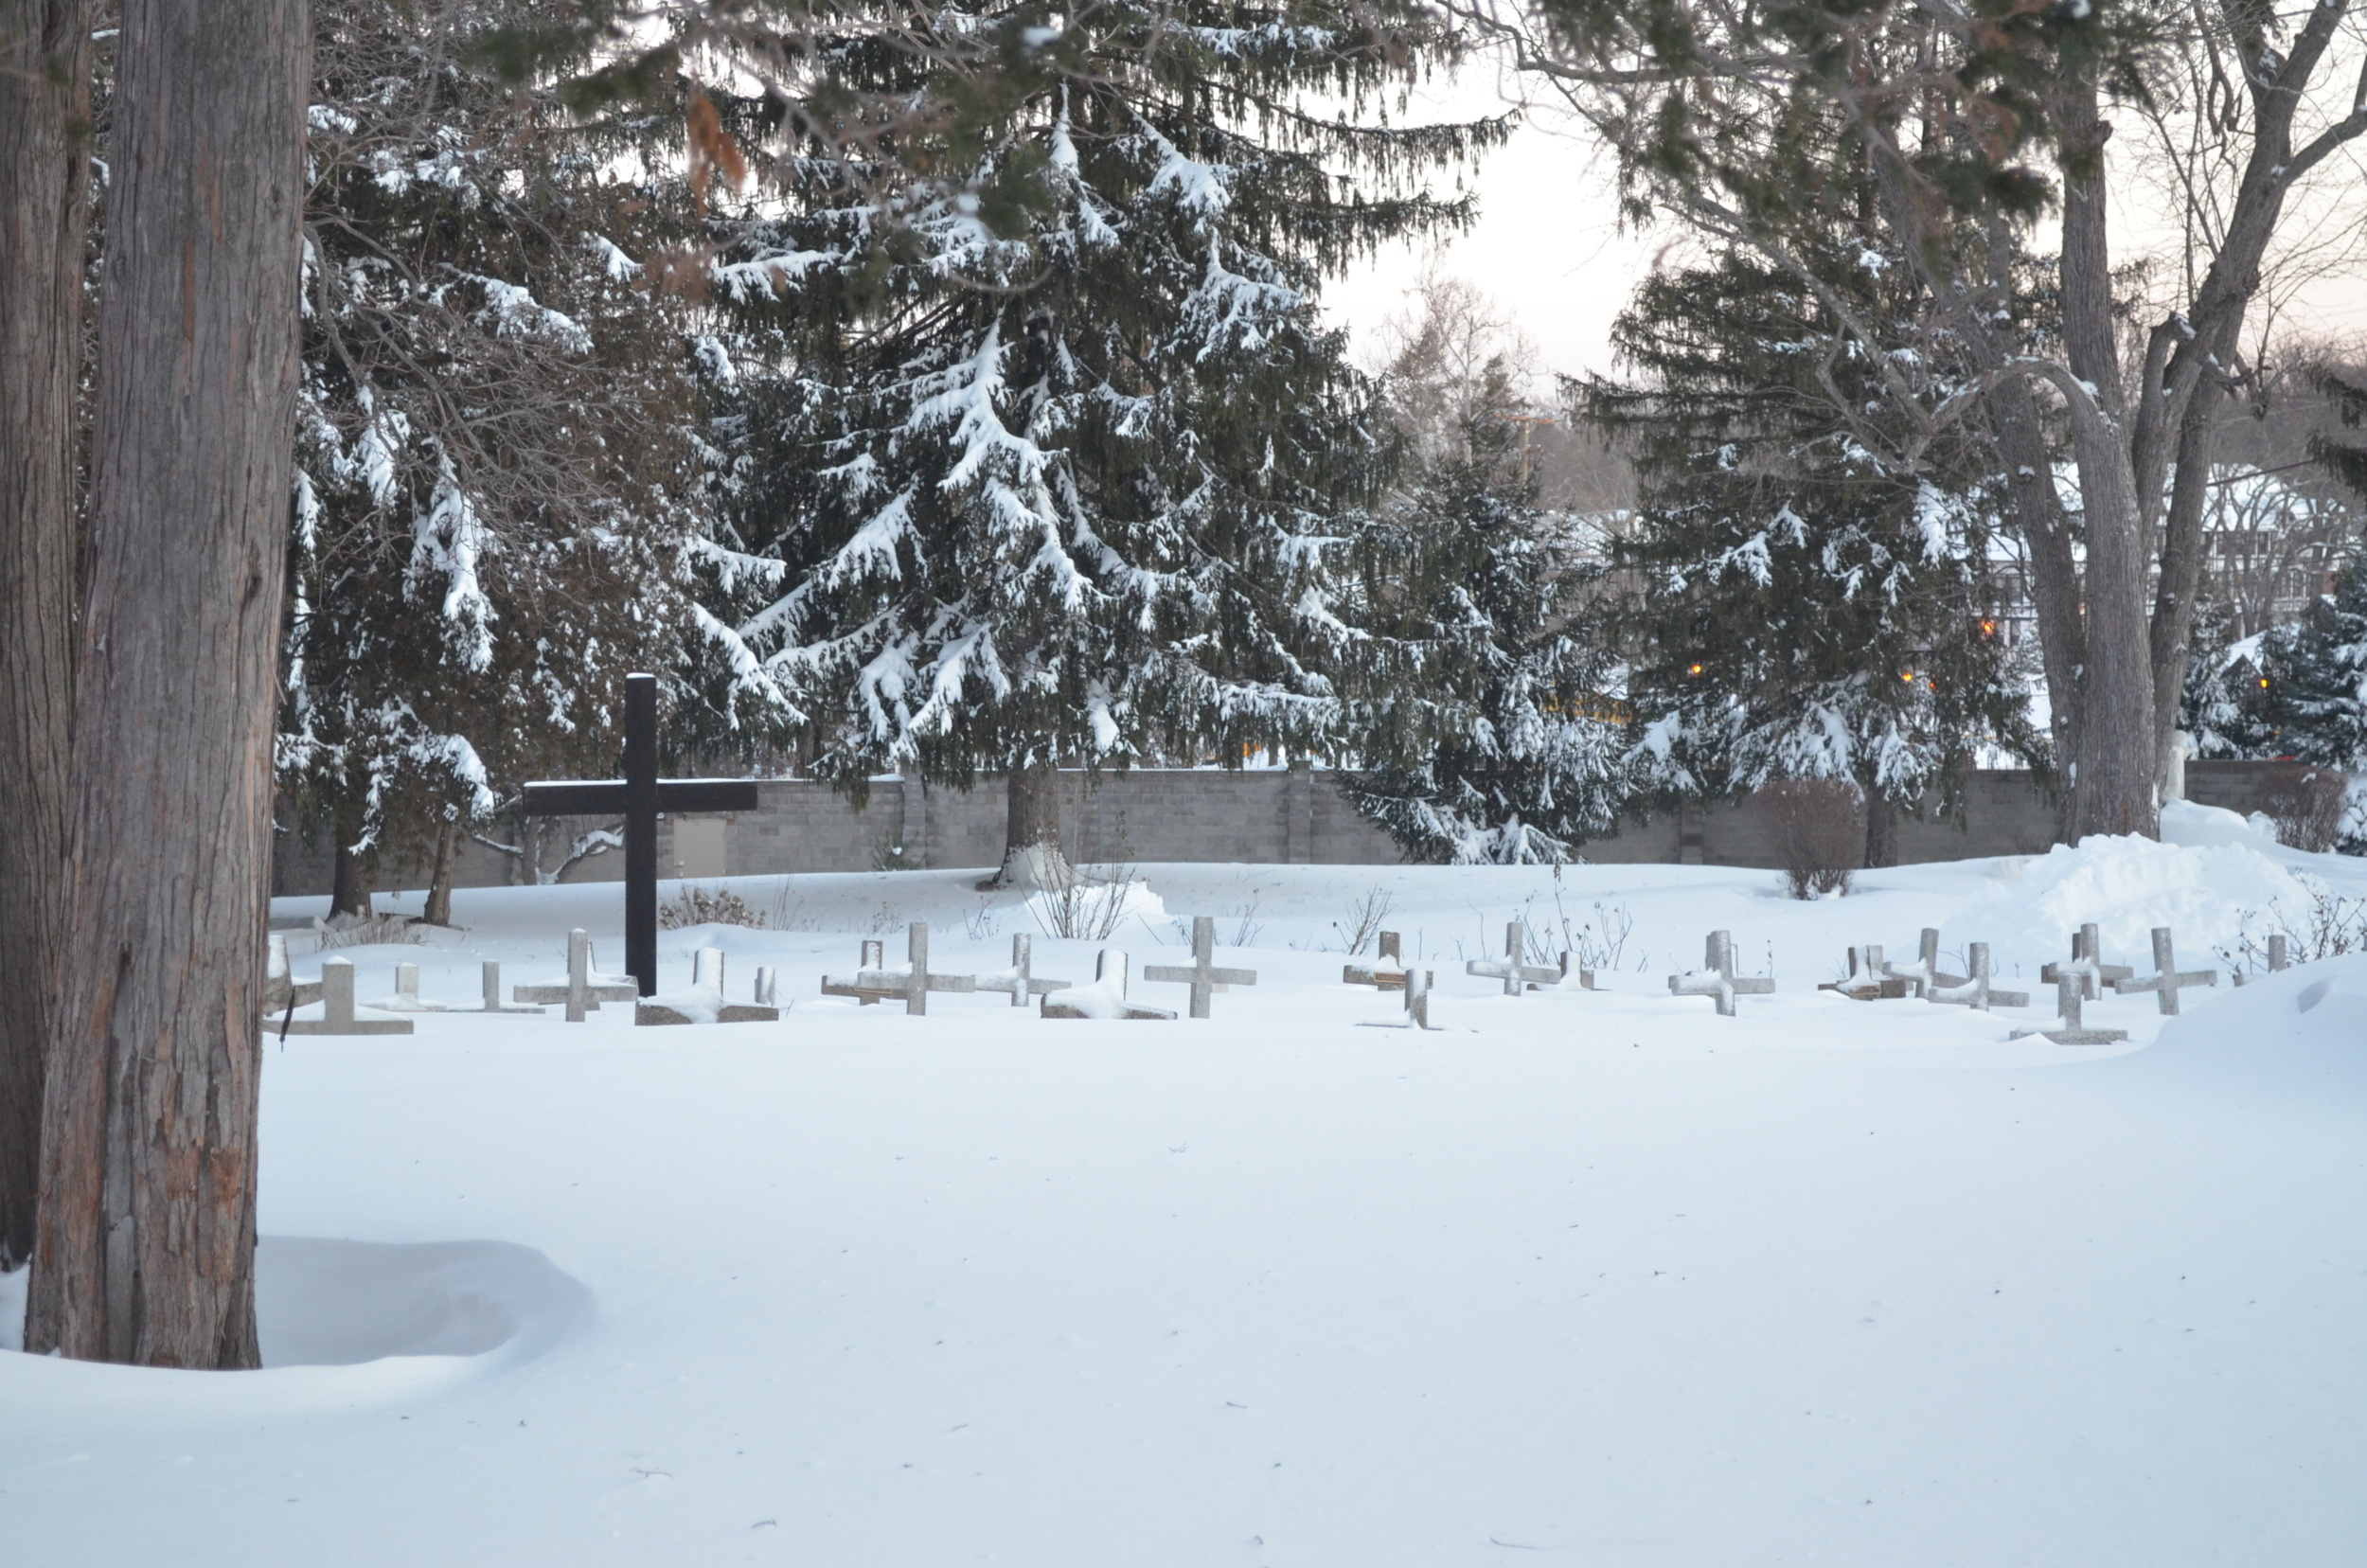 The cemetery crosses are always good markers of the depth of the snowfall!